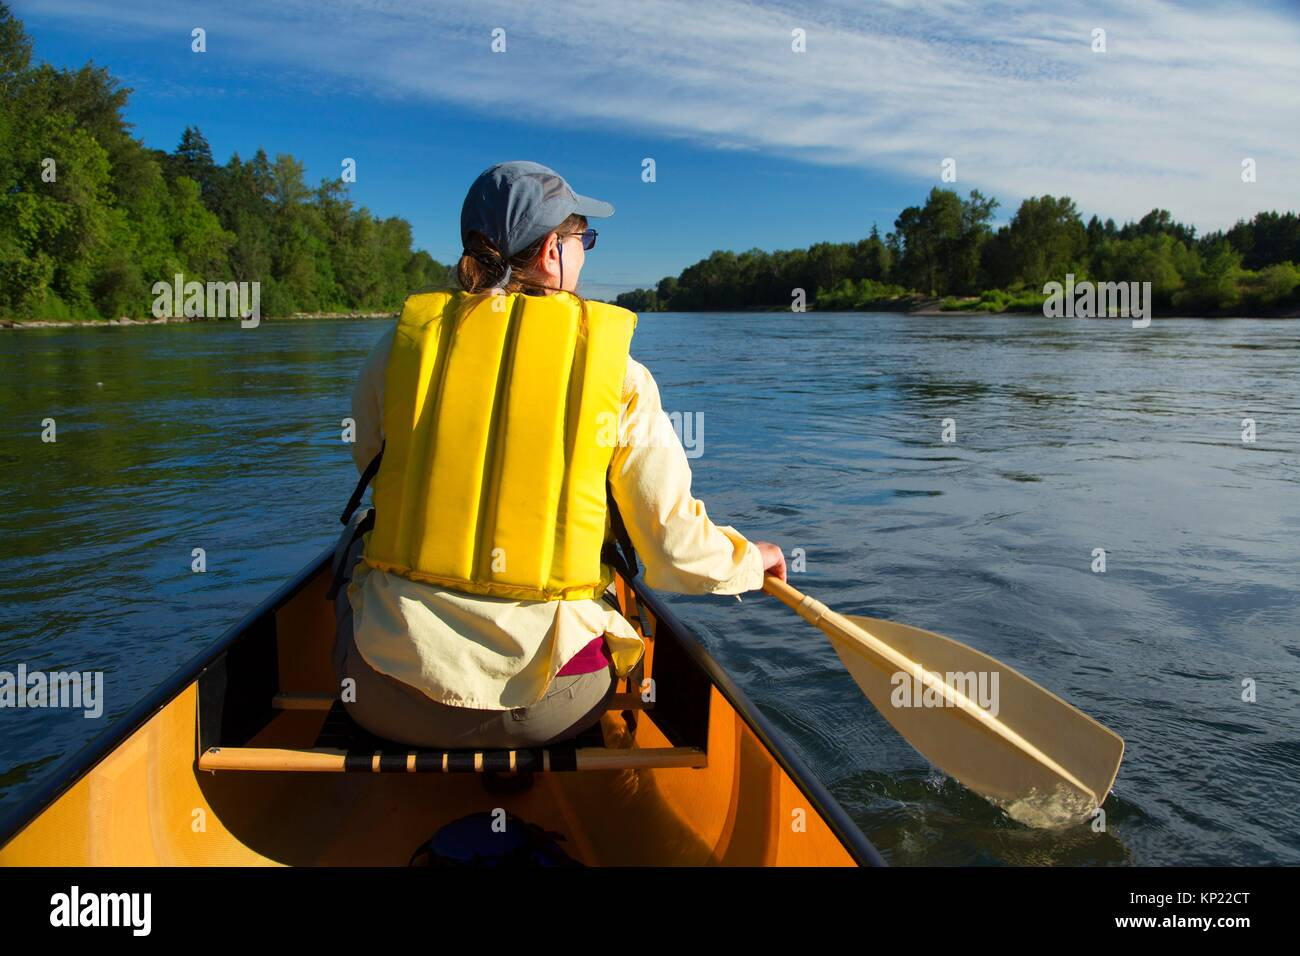 Canoeing the Willamette River, Willamette River Greenway, Polk County, Oregon. - Stock Image